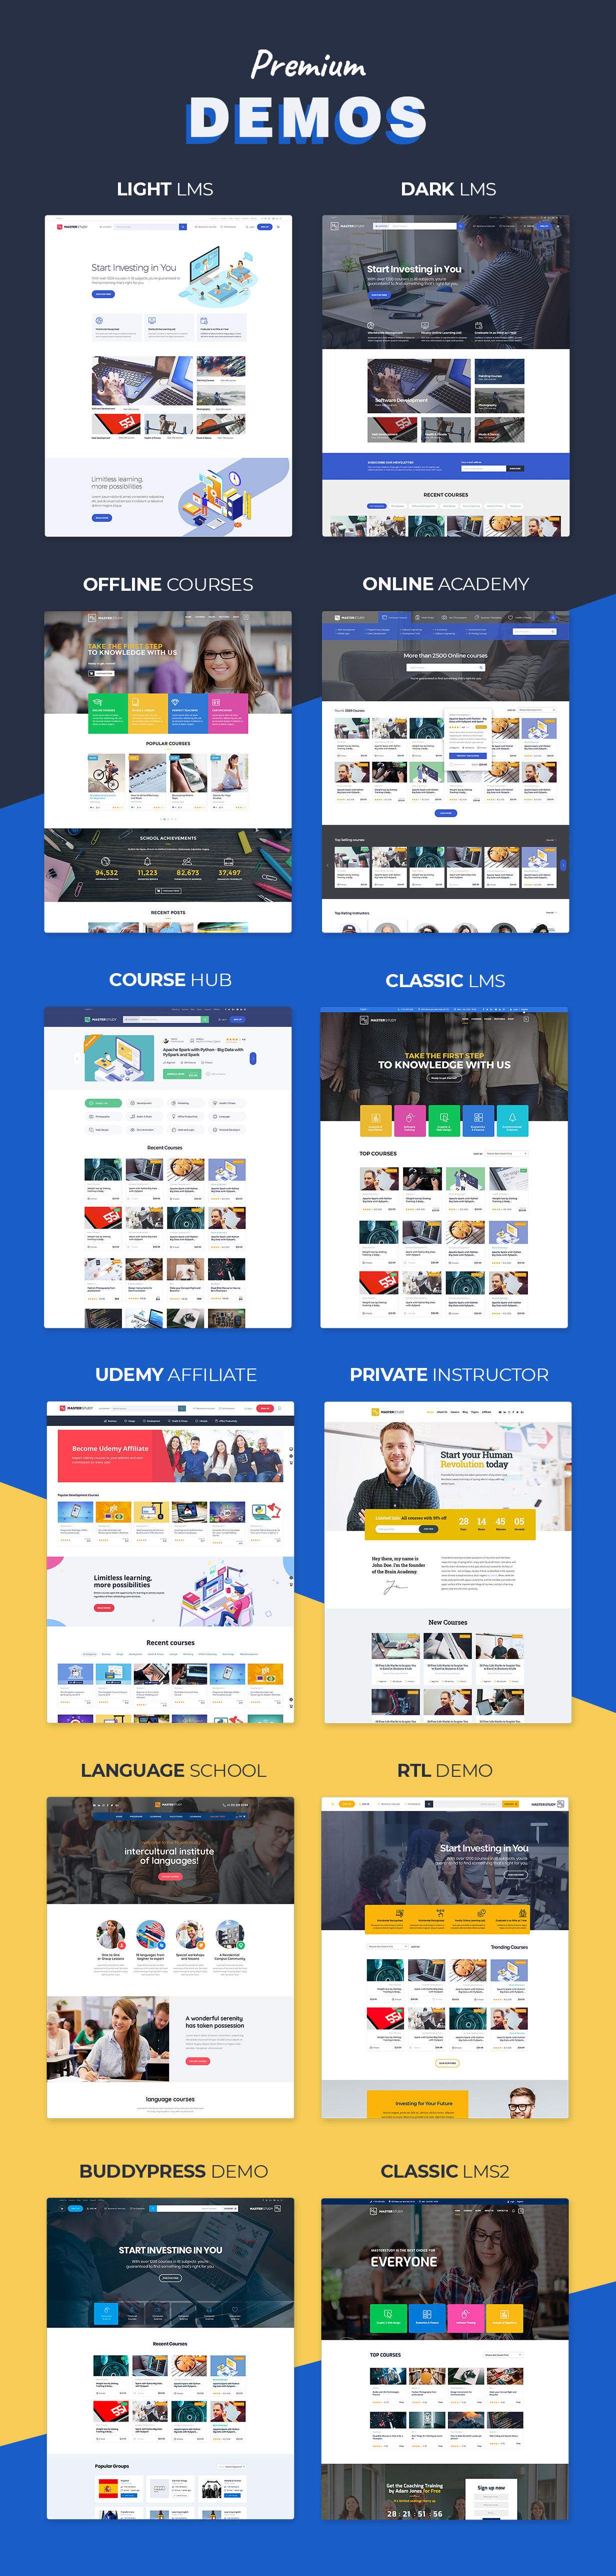 Education LMS WordPress theme